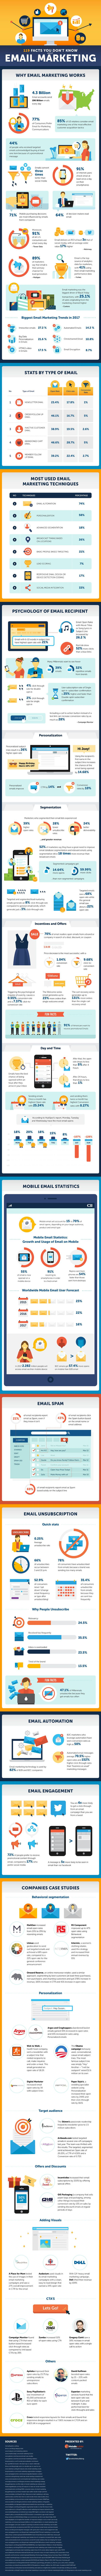 Why is email a successful marketing channel? Check out these email-related facts and figures about unsubscribe rates, automation, personalization, case studies, and much more!